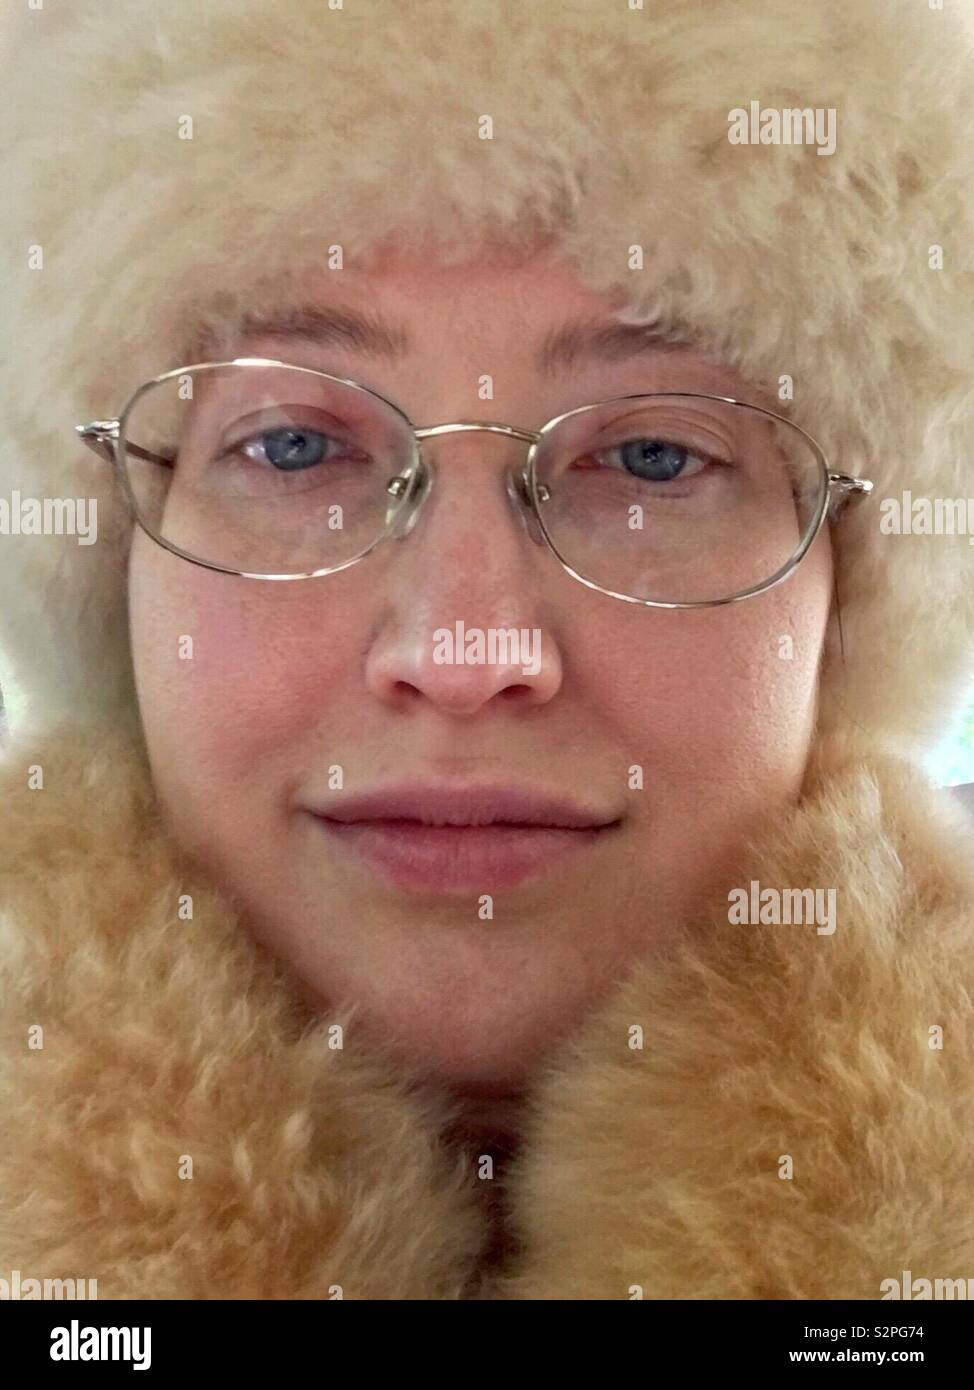 Face of Caucasian woman with blue eyes and gold rimmed glasses wearing cruelty free no-kill alpaca fur hat and scarf Stock Photo